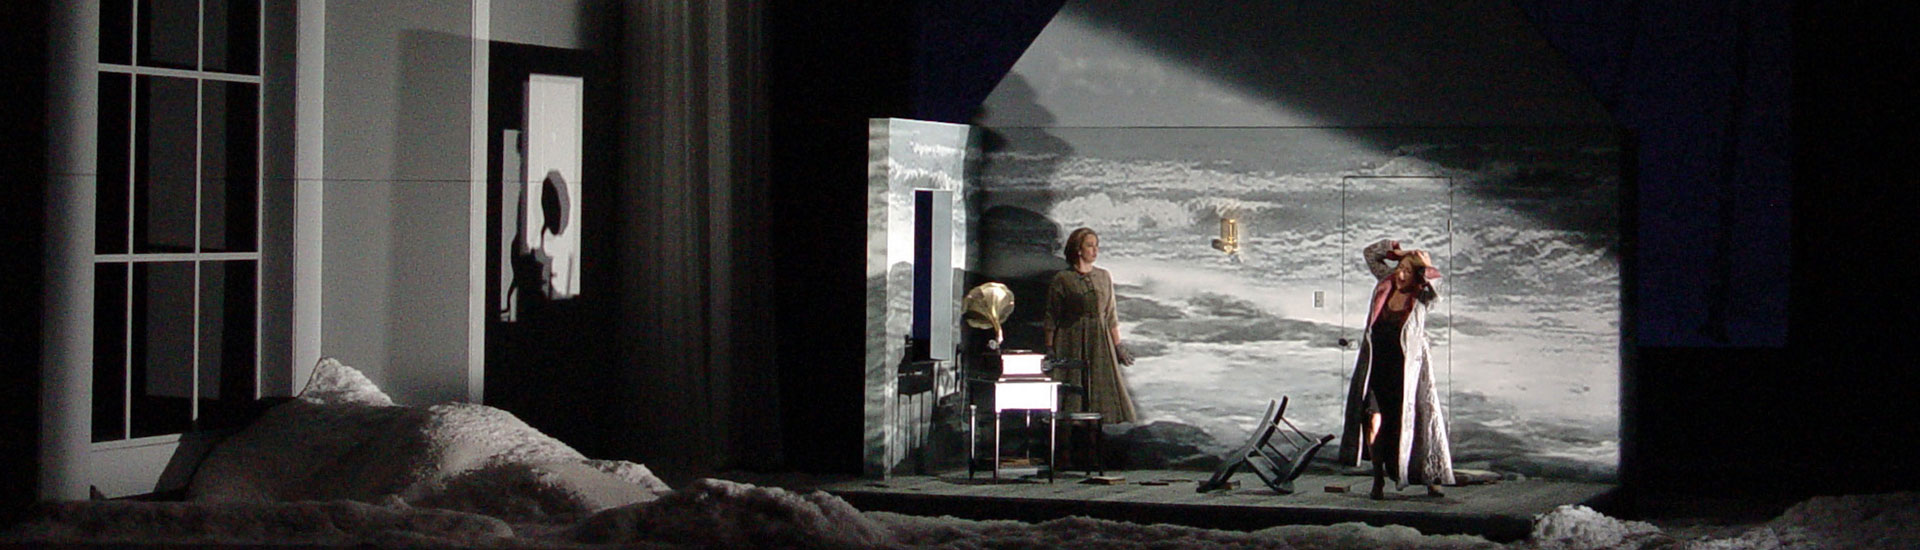 Double Bill &#8211; Glimmerglass Festival:<br>A Blizzard on Marblehead Neck<br>&#038; Later the Same Evening <br>Scenic Design by Erhard Rom